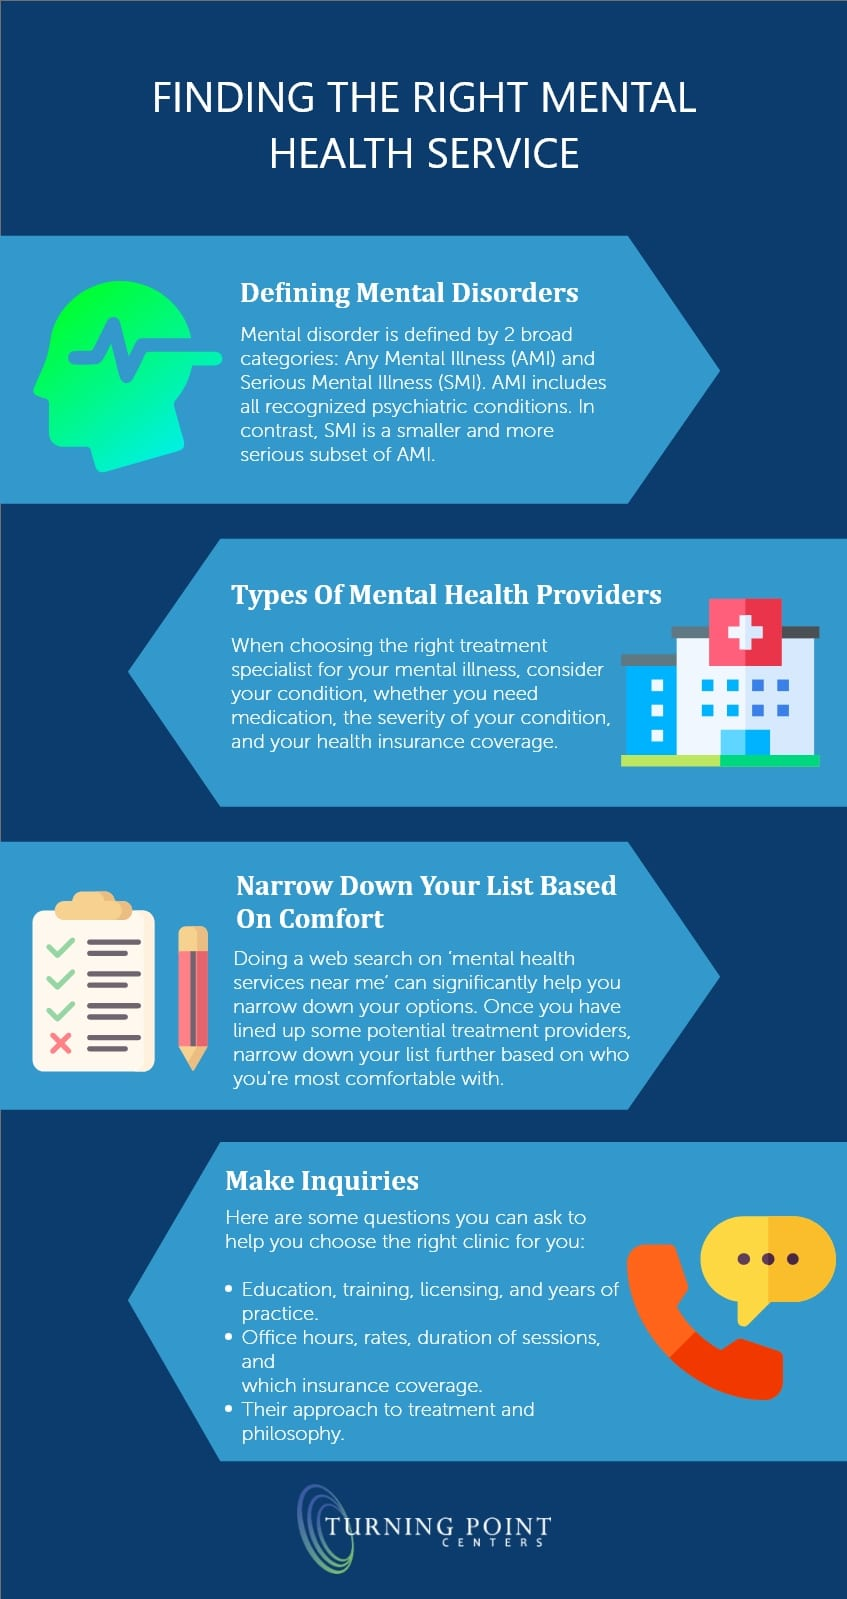 Finding The Right Mental Health Service